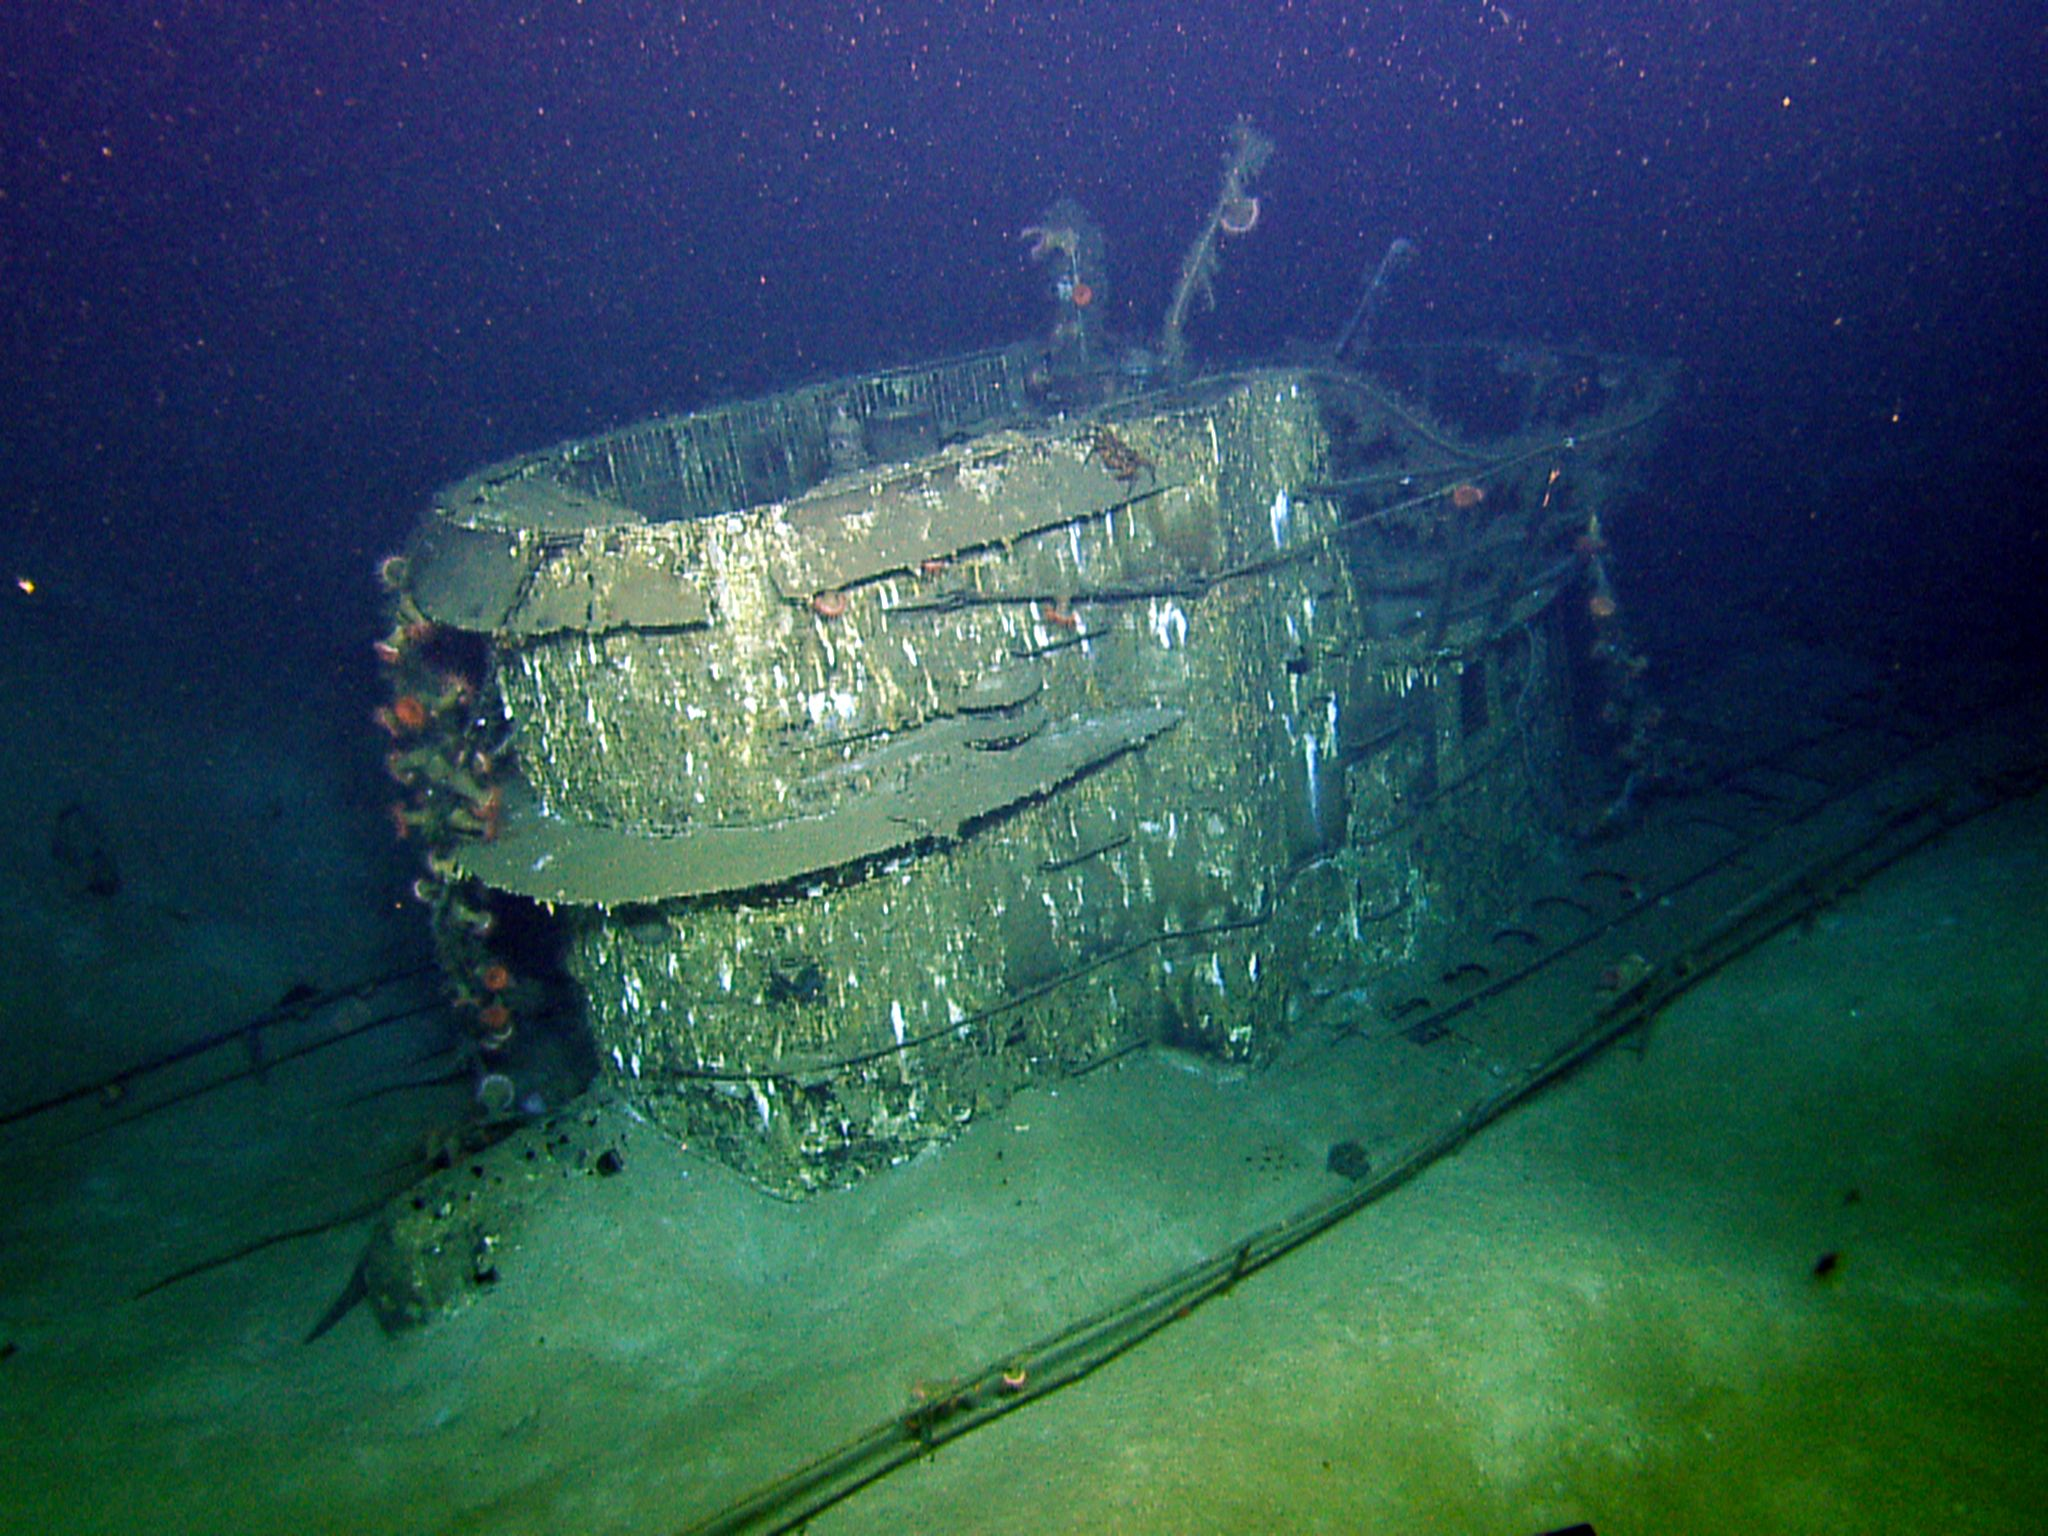 Conning Tower from wrecked Nazi U-boat, U-166. This image is from Nazi U-Boat. [Photo of the day - October 2015]